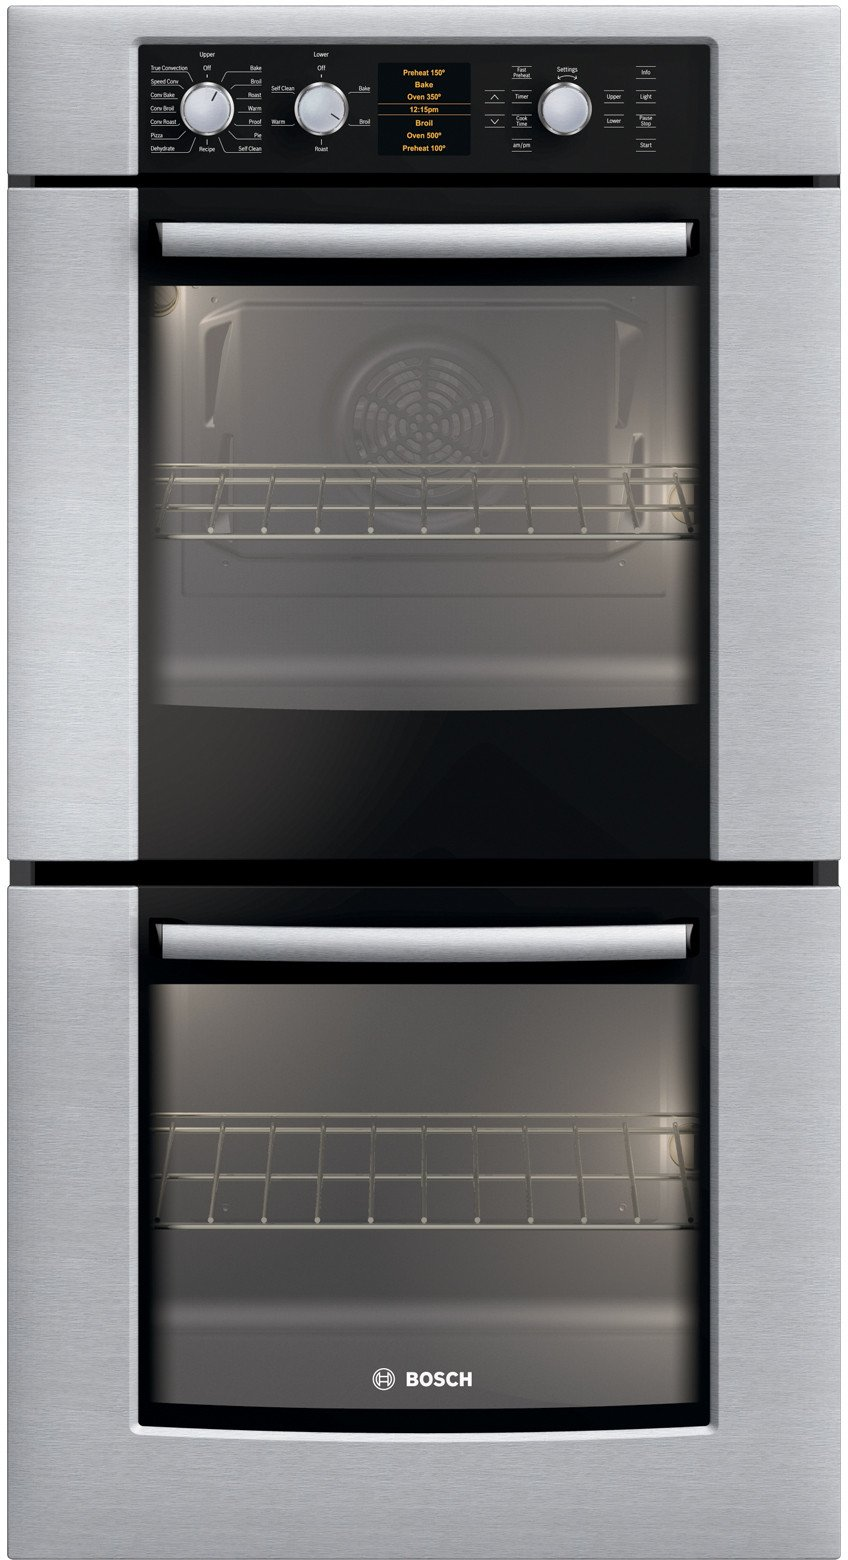 """Bosch HBN5650UC 500 Series 27"""" Double Electric Wall Oven with Genuine European Convection in Upper Oven, and Glass Touch Controls in Stainless Steel"""